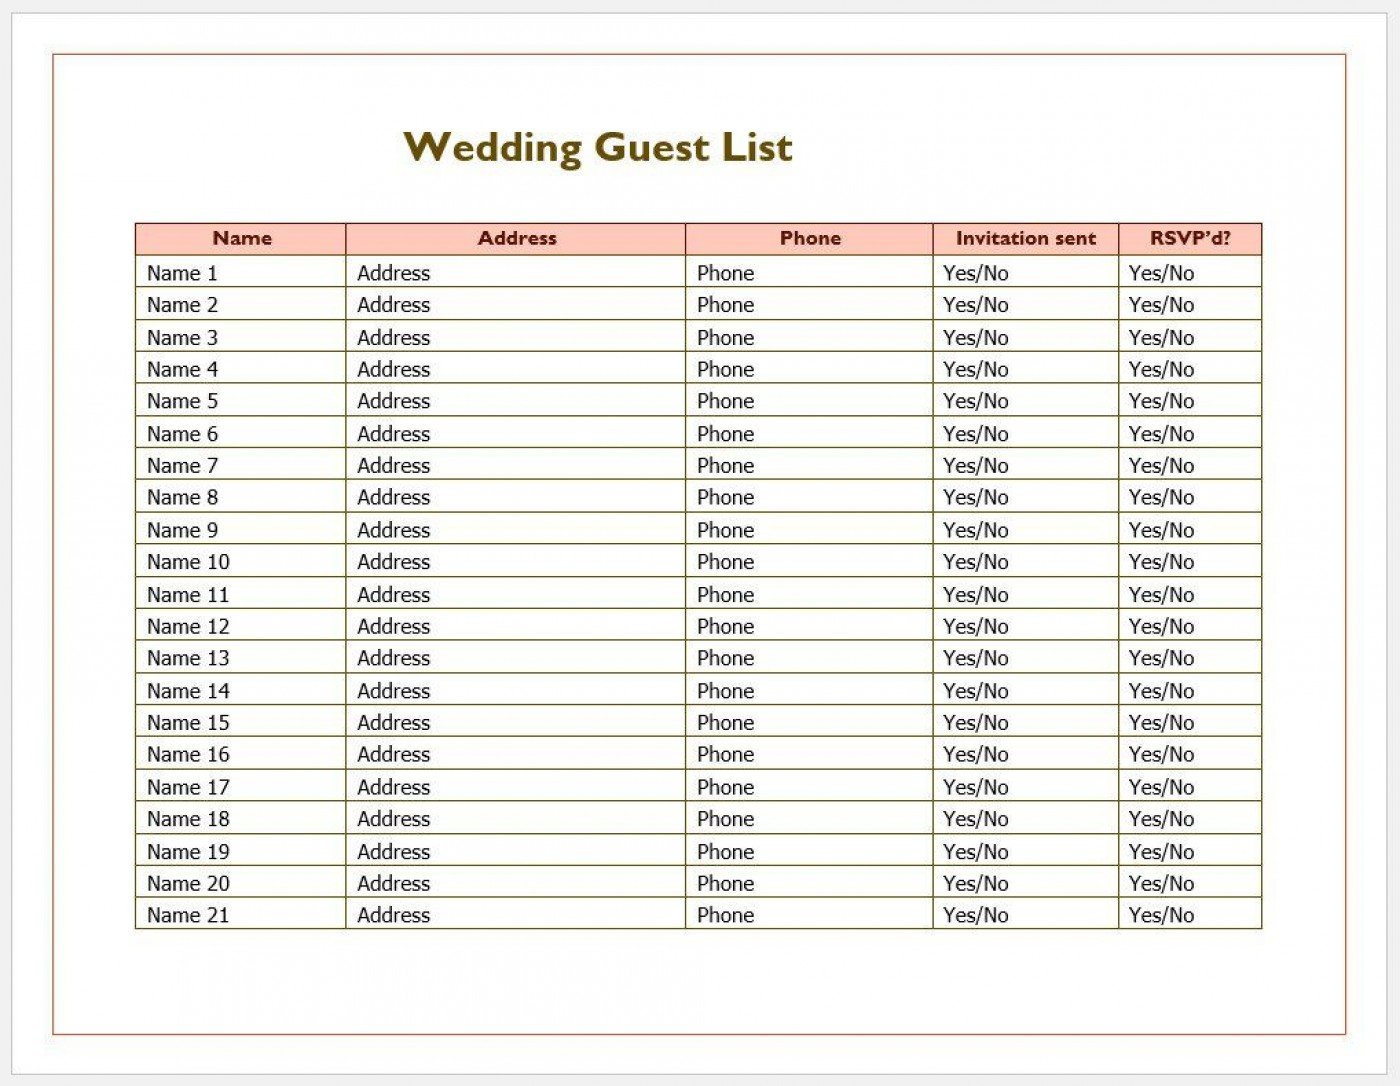 007 Phenomenal Wedding Guest List Excel Spreadsheet Template Image 1400